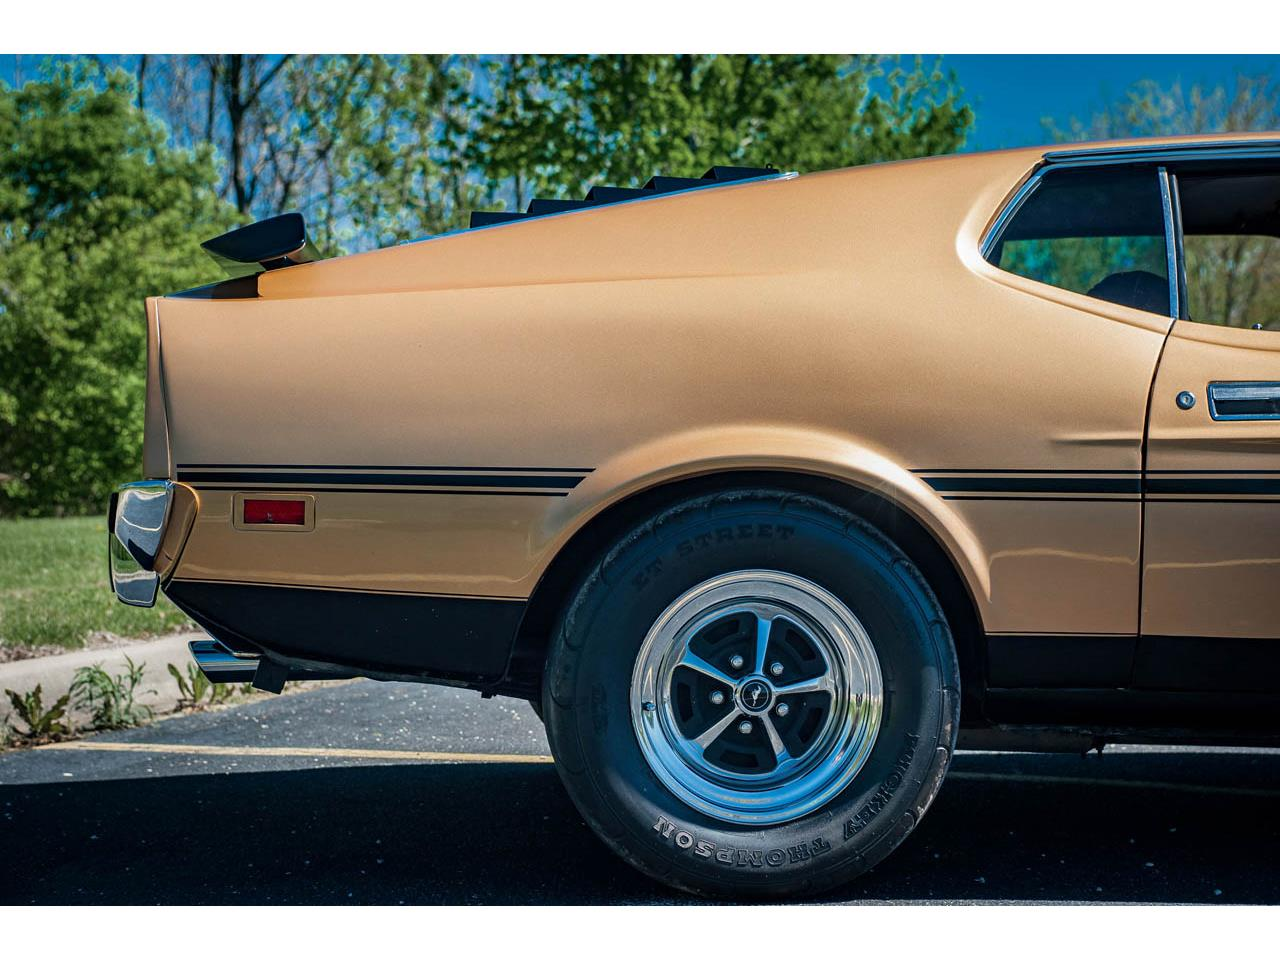 Large Picture of '73 Mustang located in O'Fallon Illinois - $34,500.00 Offered by Gateway Classic Cars - St. Louis - QB8T